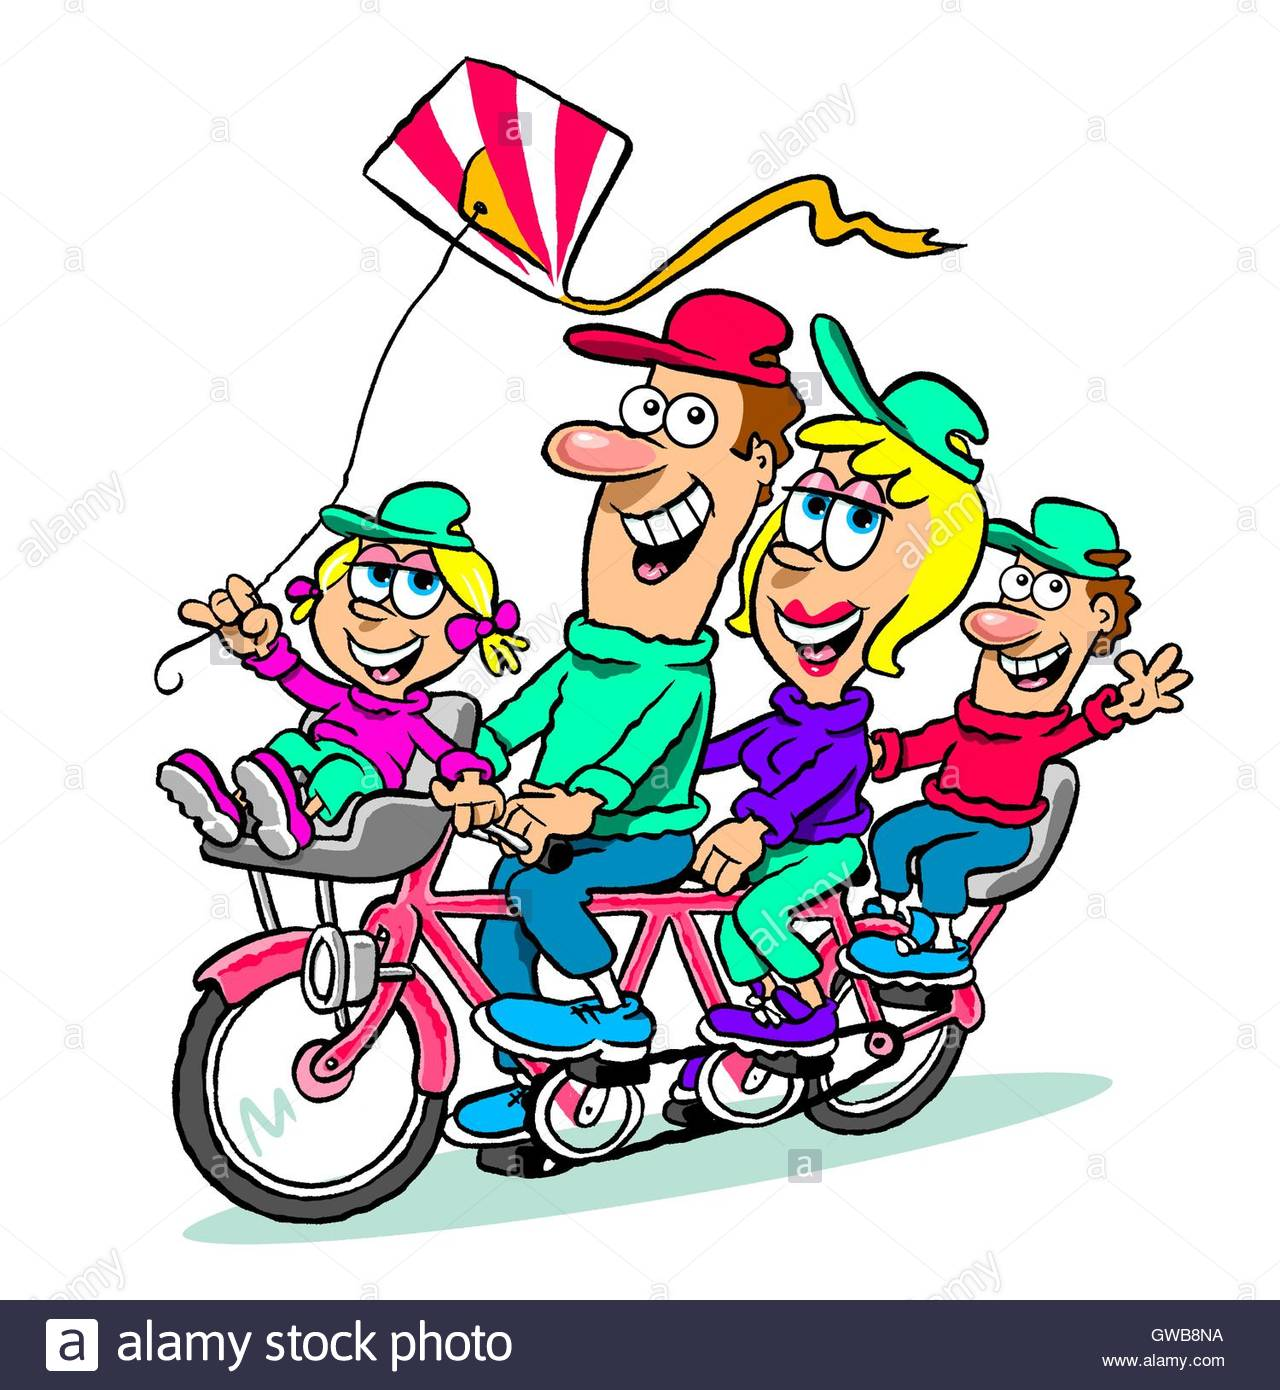 Cartoon Caricature Of Happy Family Riding Tandem Bike And Flying A.